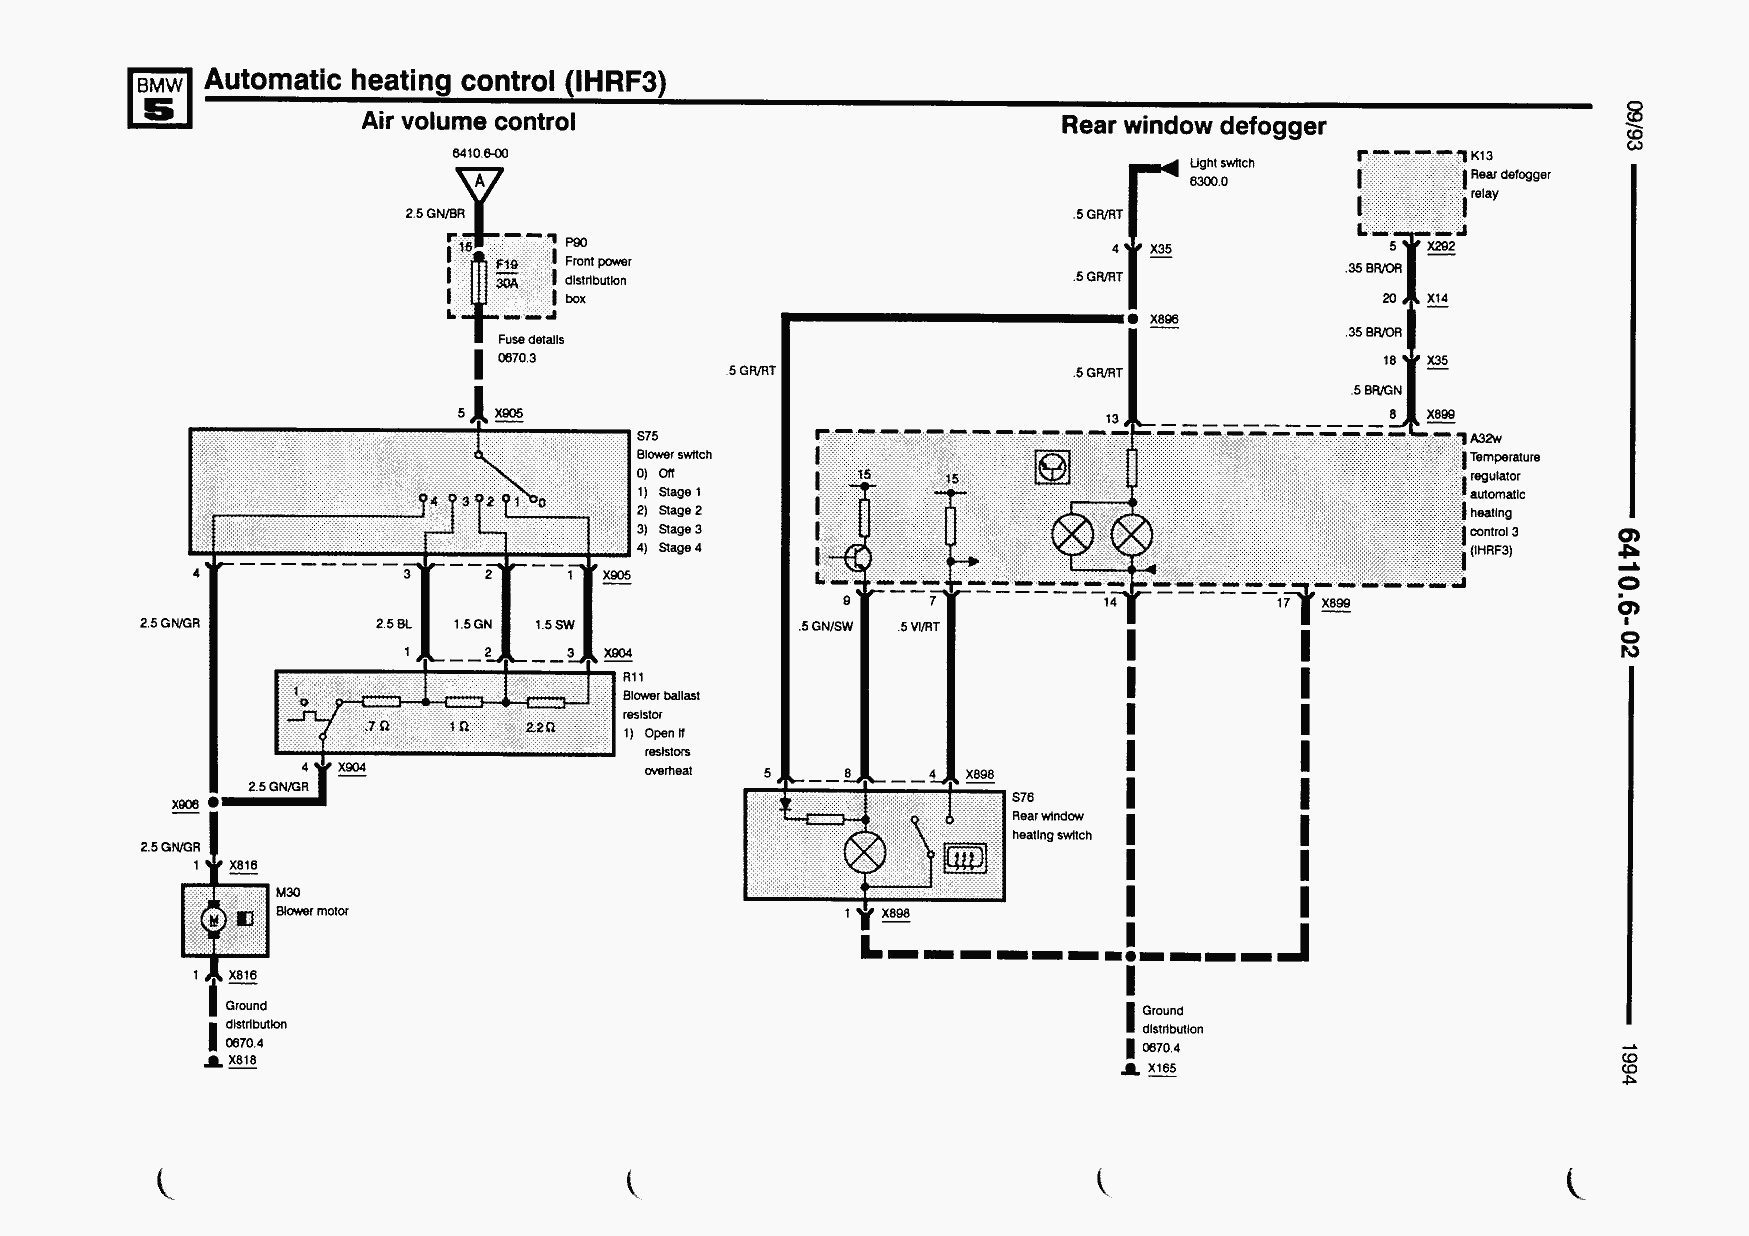 1994 E34 Fuse Box Schematic Diagrams Bmw Wiring Diagram 520i Schematics Suspension Kit